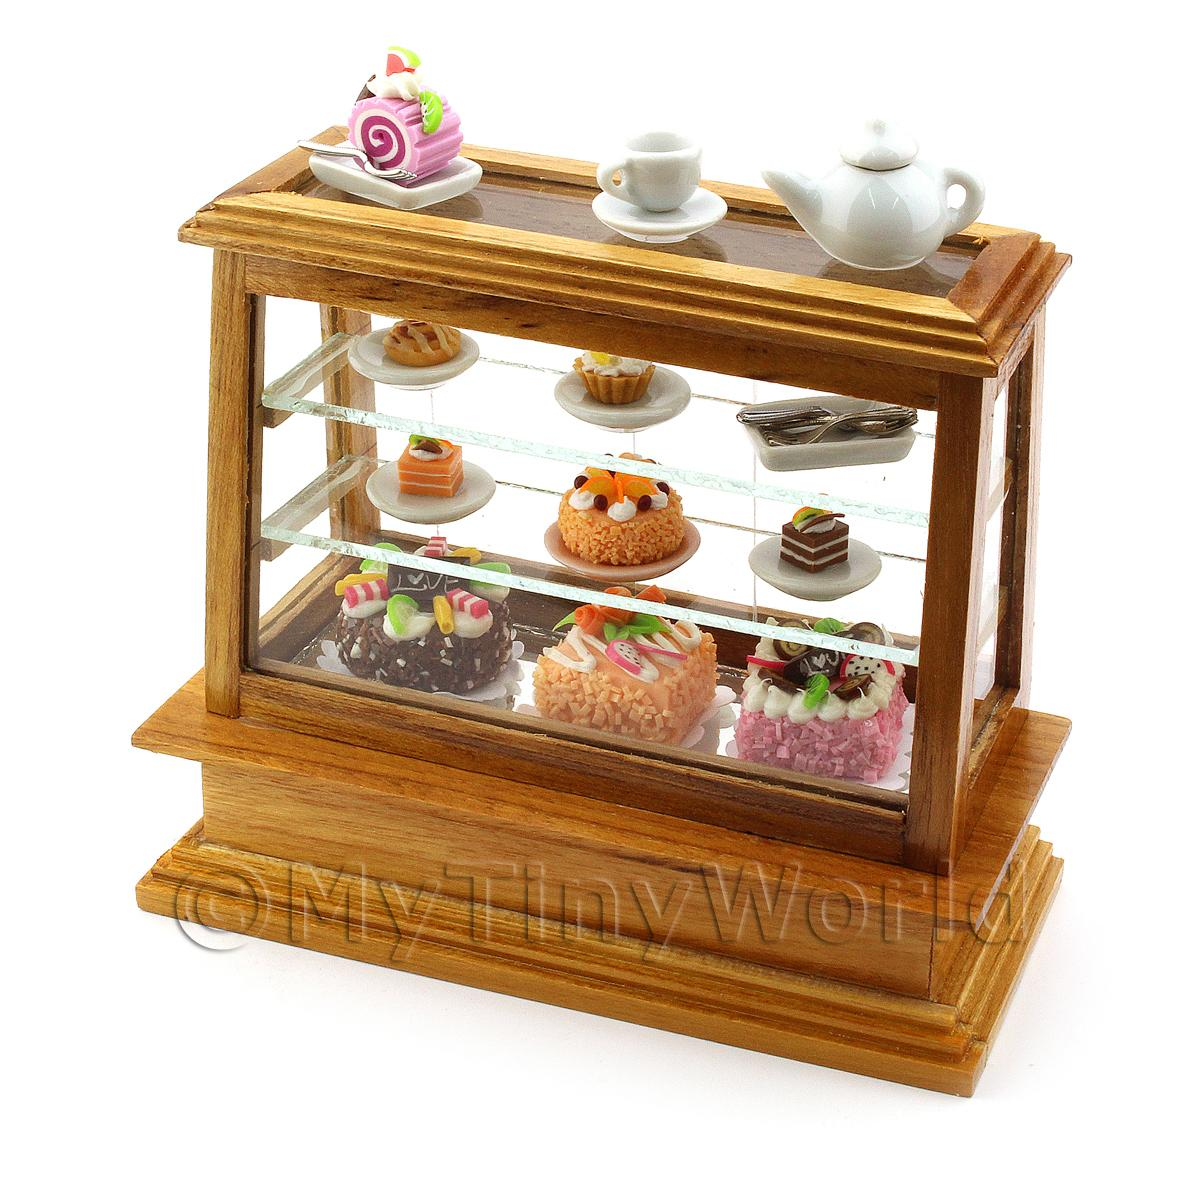 Medium Dolls House Miniature Wood Cafe Counter